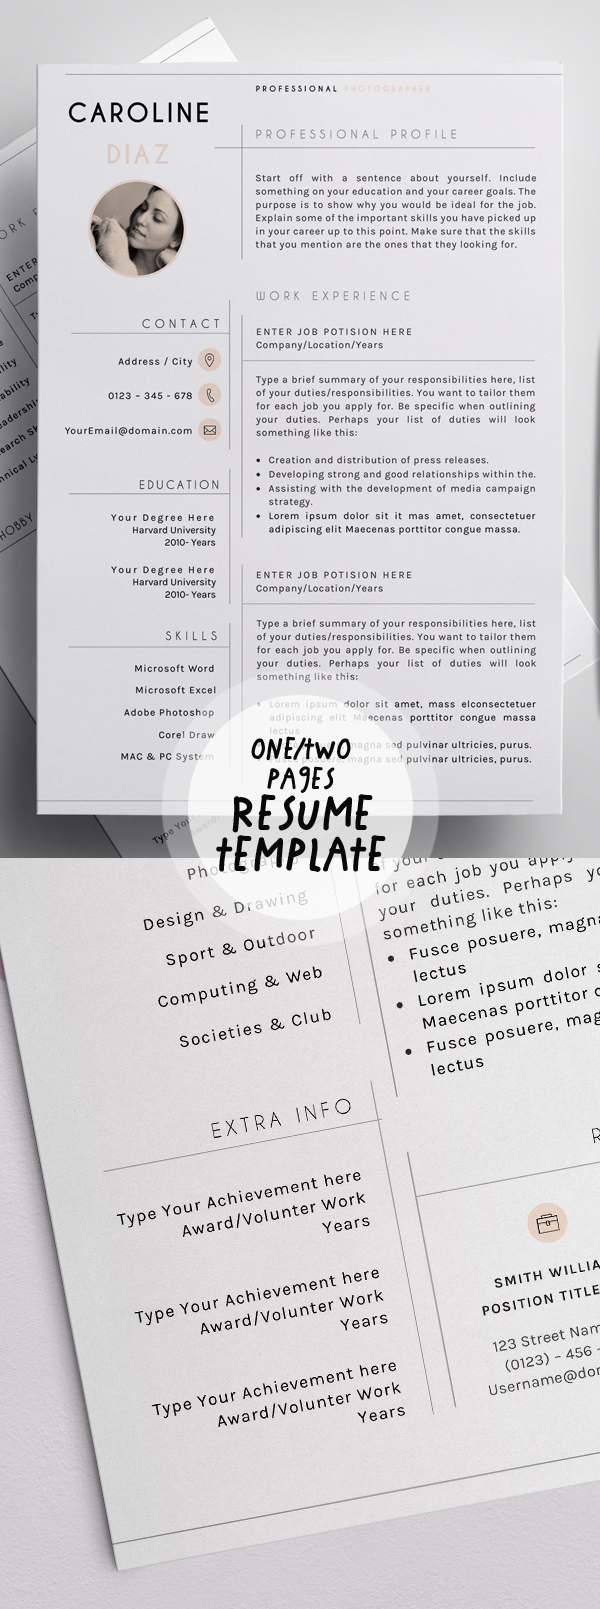 One or Two Page Resume Templates